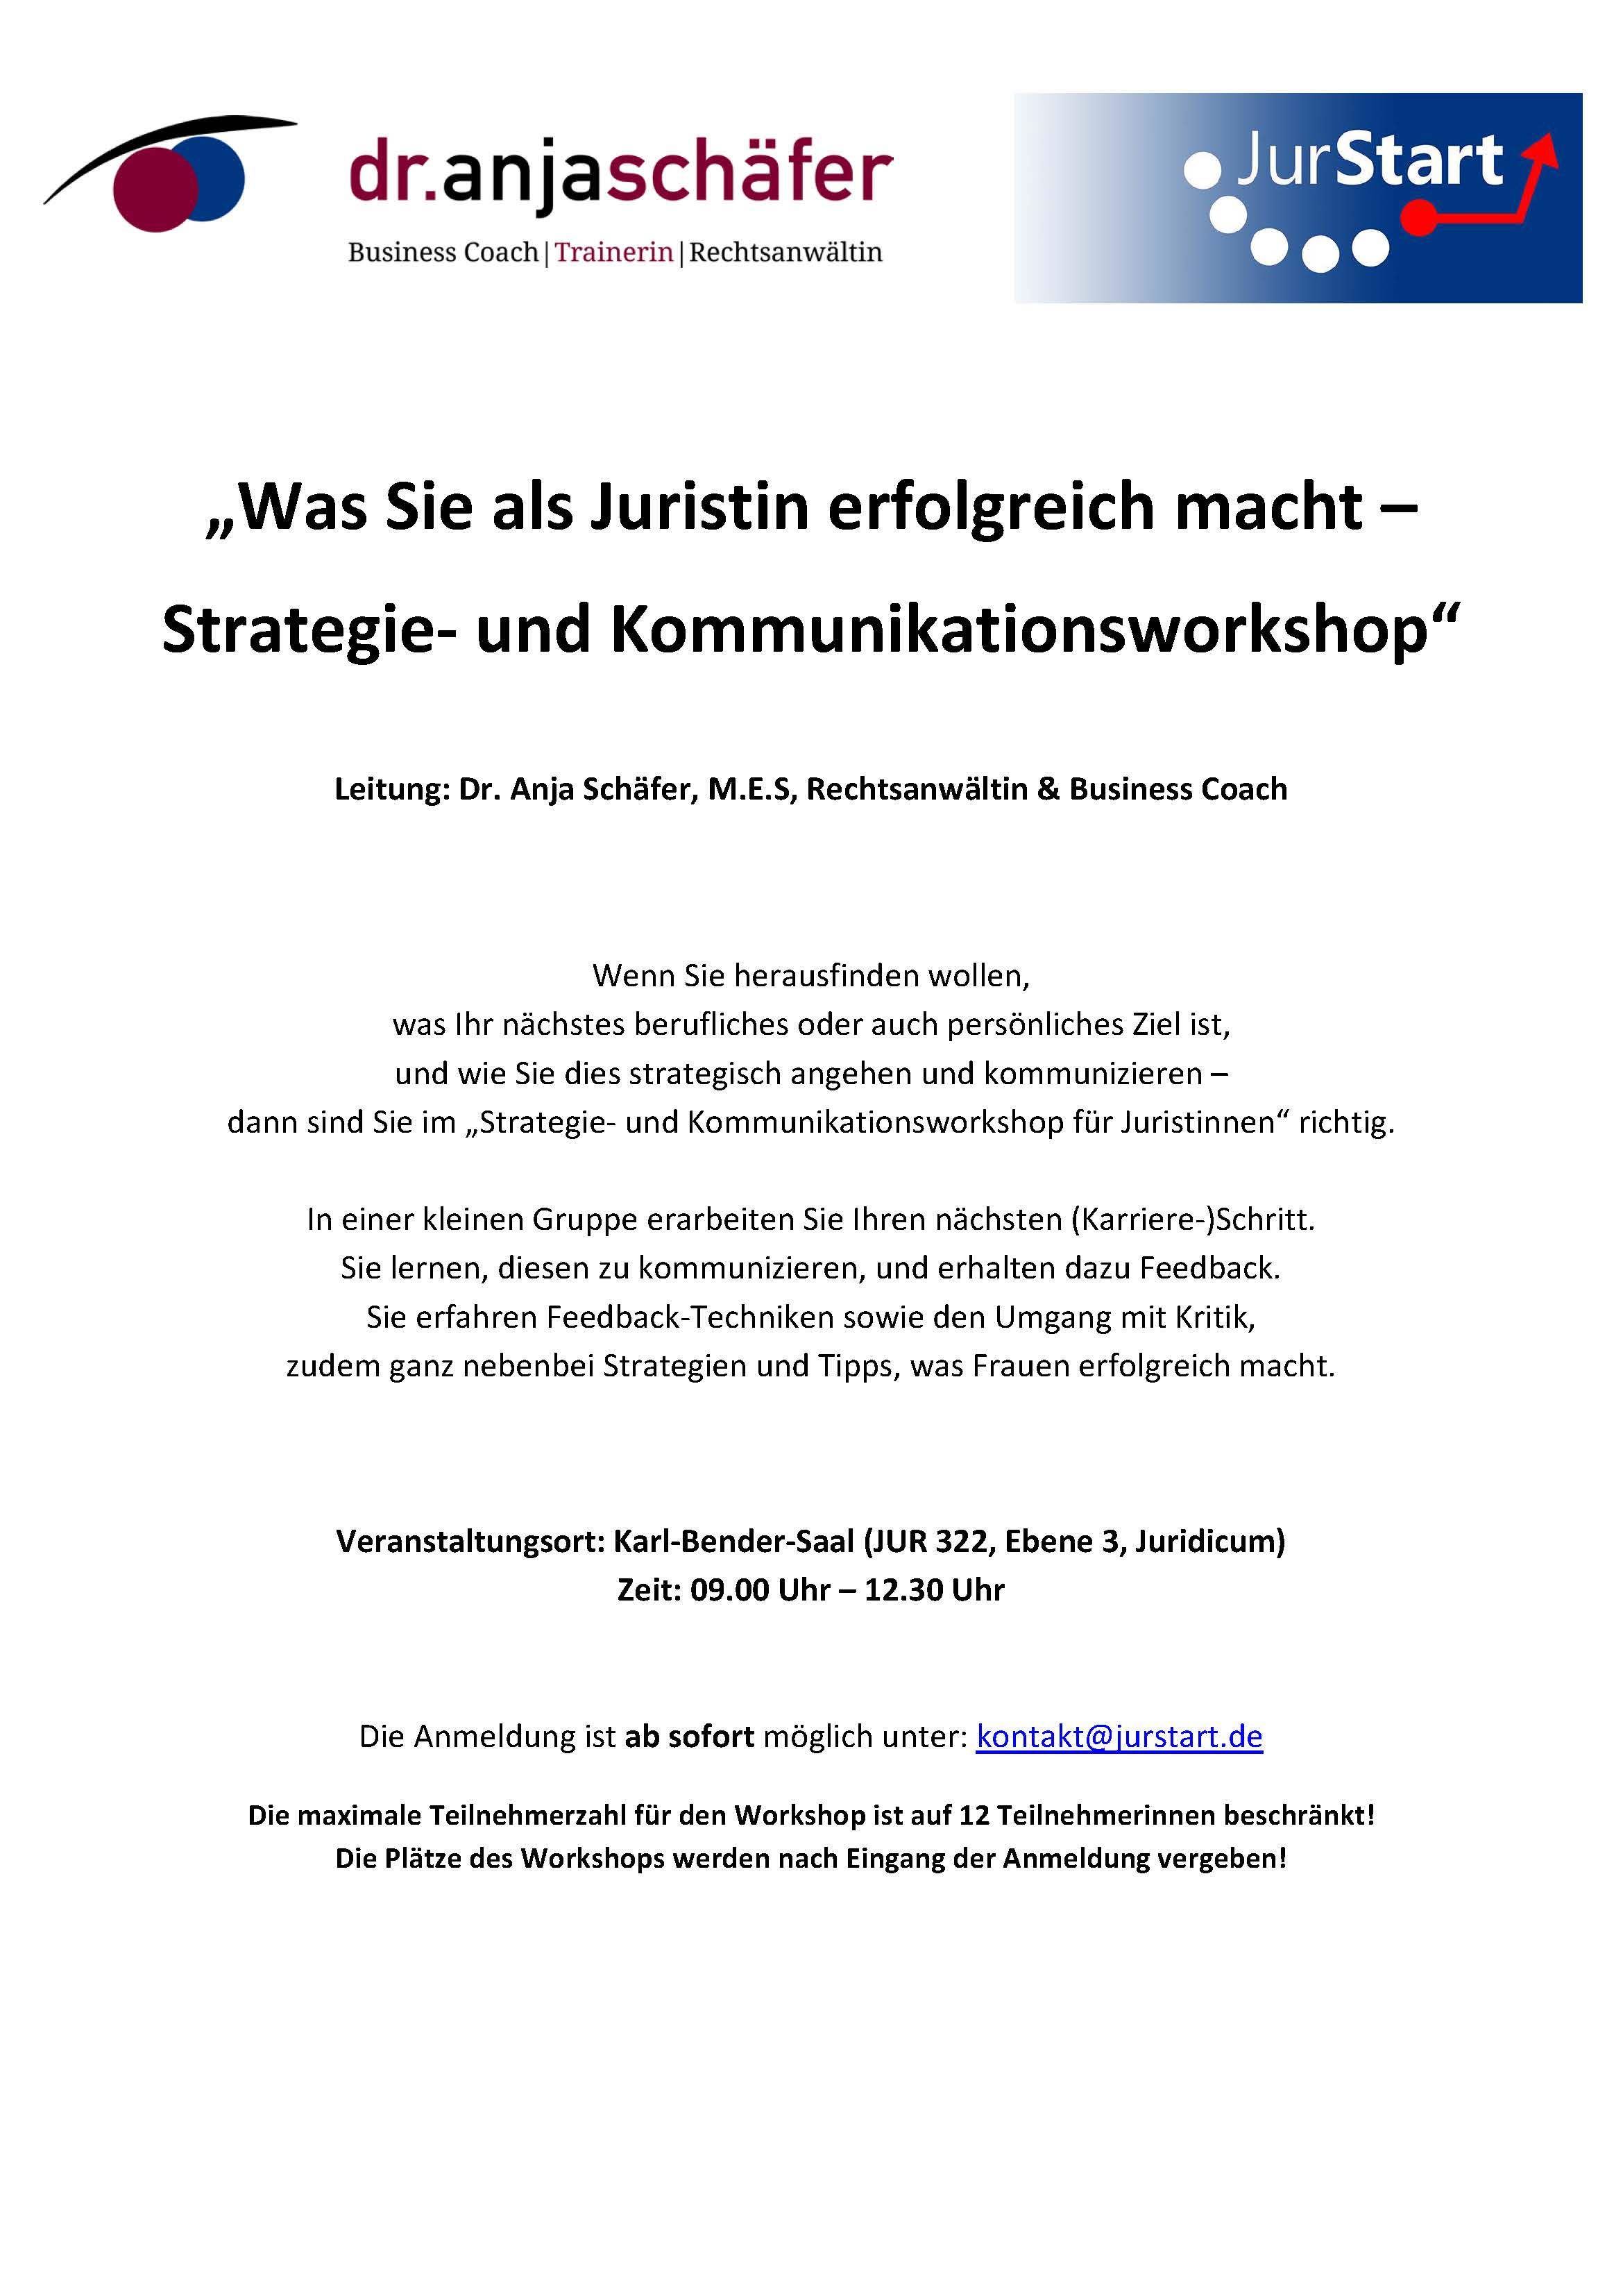 Kommunikationsworkshop.jpg